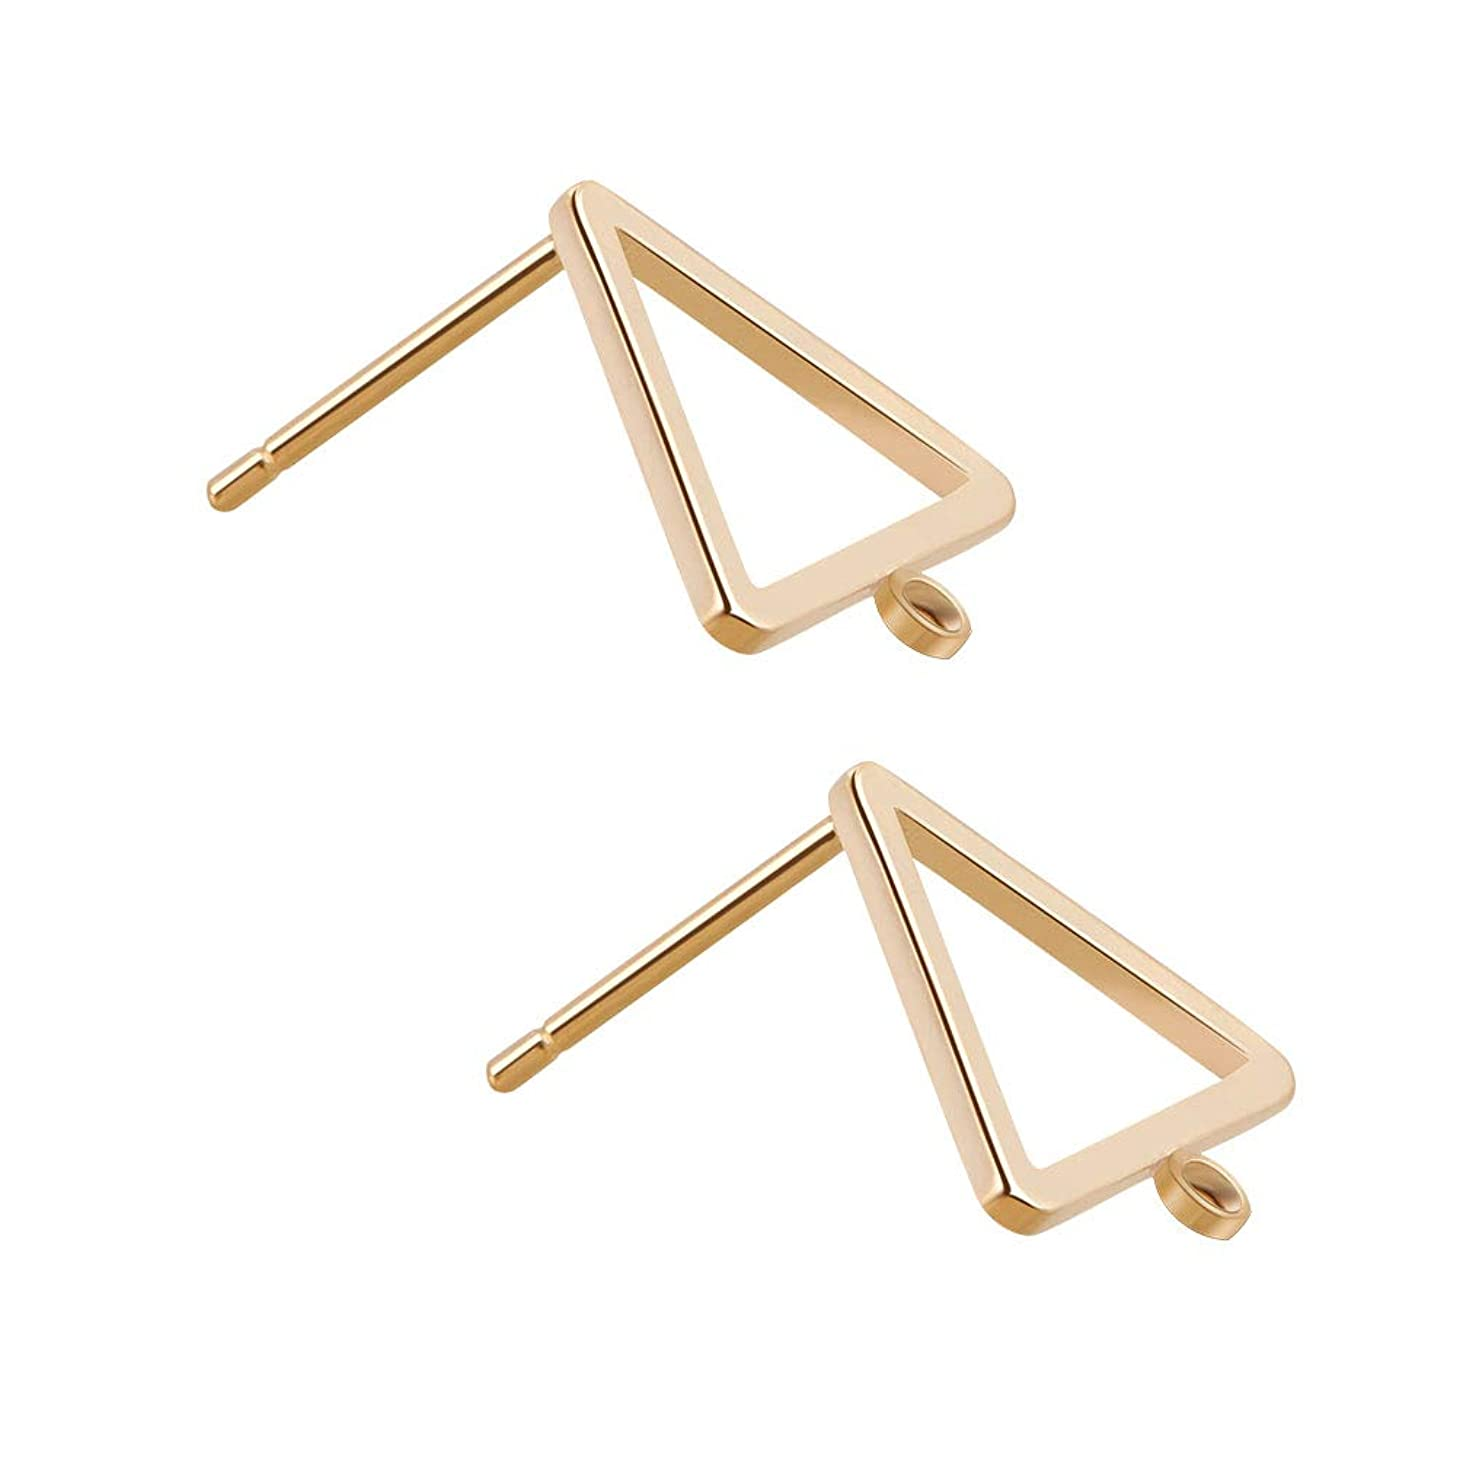 BENECREAT 5 Pairs 18K Gold Plated Earring Studs Earring Posts Triangle Stud Earrings with Hole for DIY Jewelry Making Findings - 10.6x10.6mm